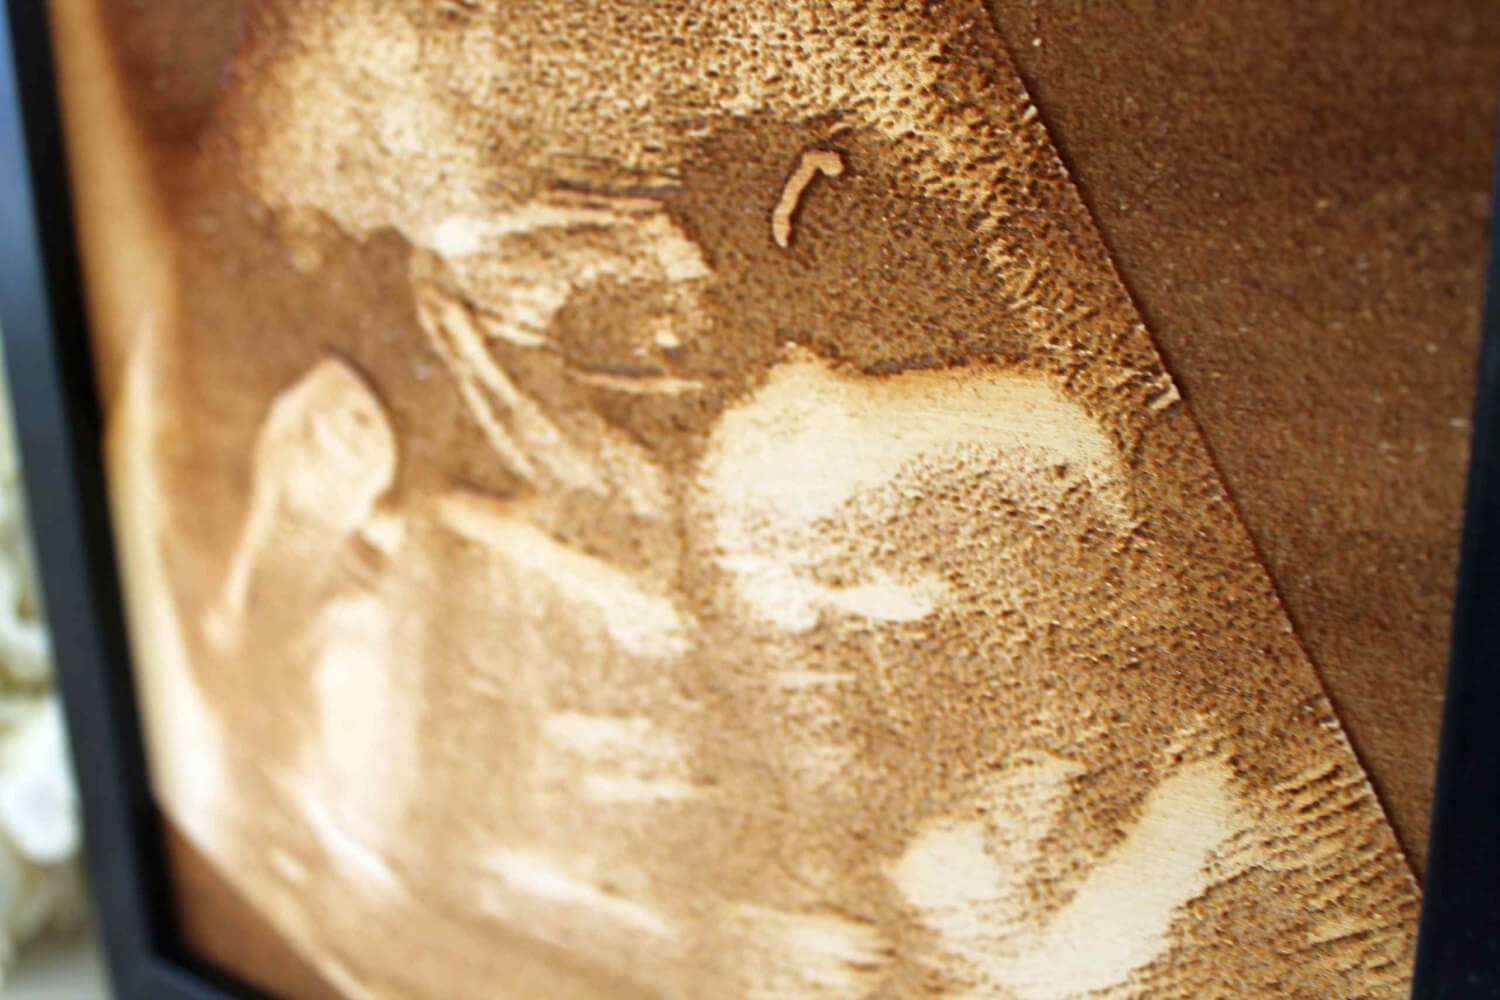 Baby Scan Engraving - Engraved into Wood - Framed Baby Scan